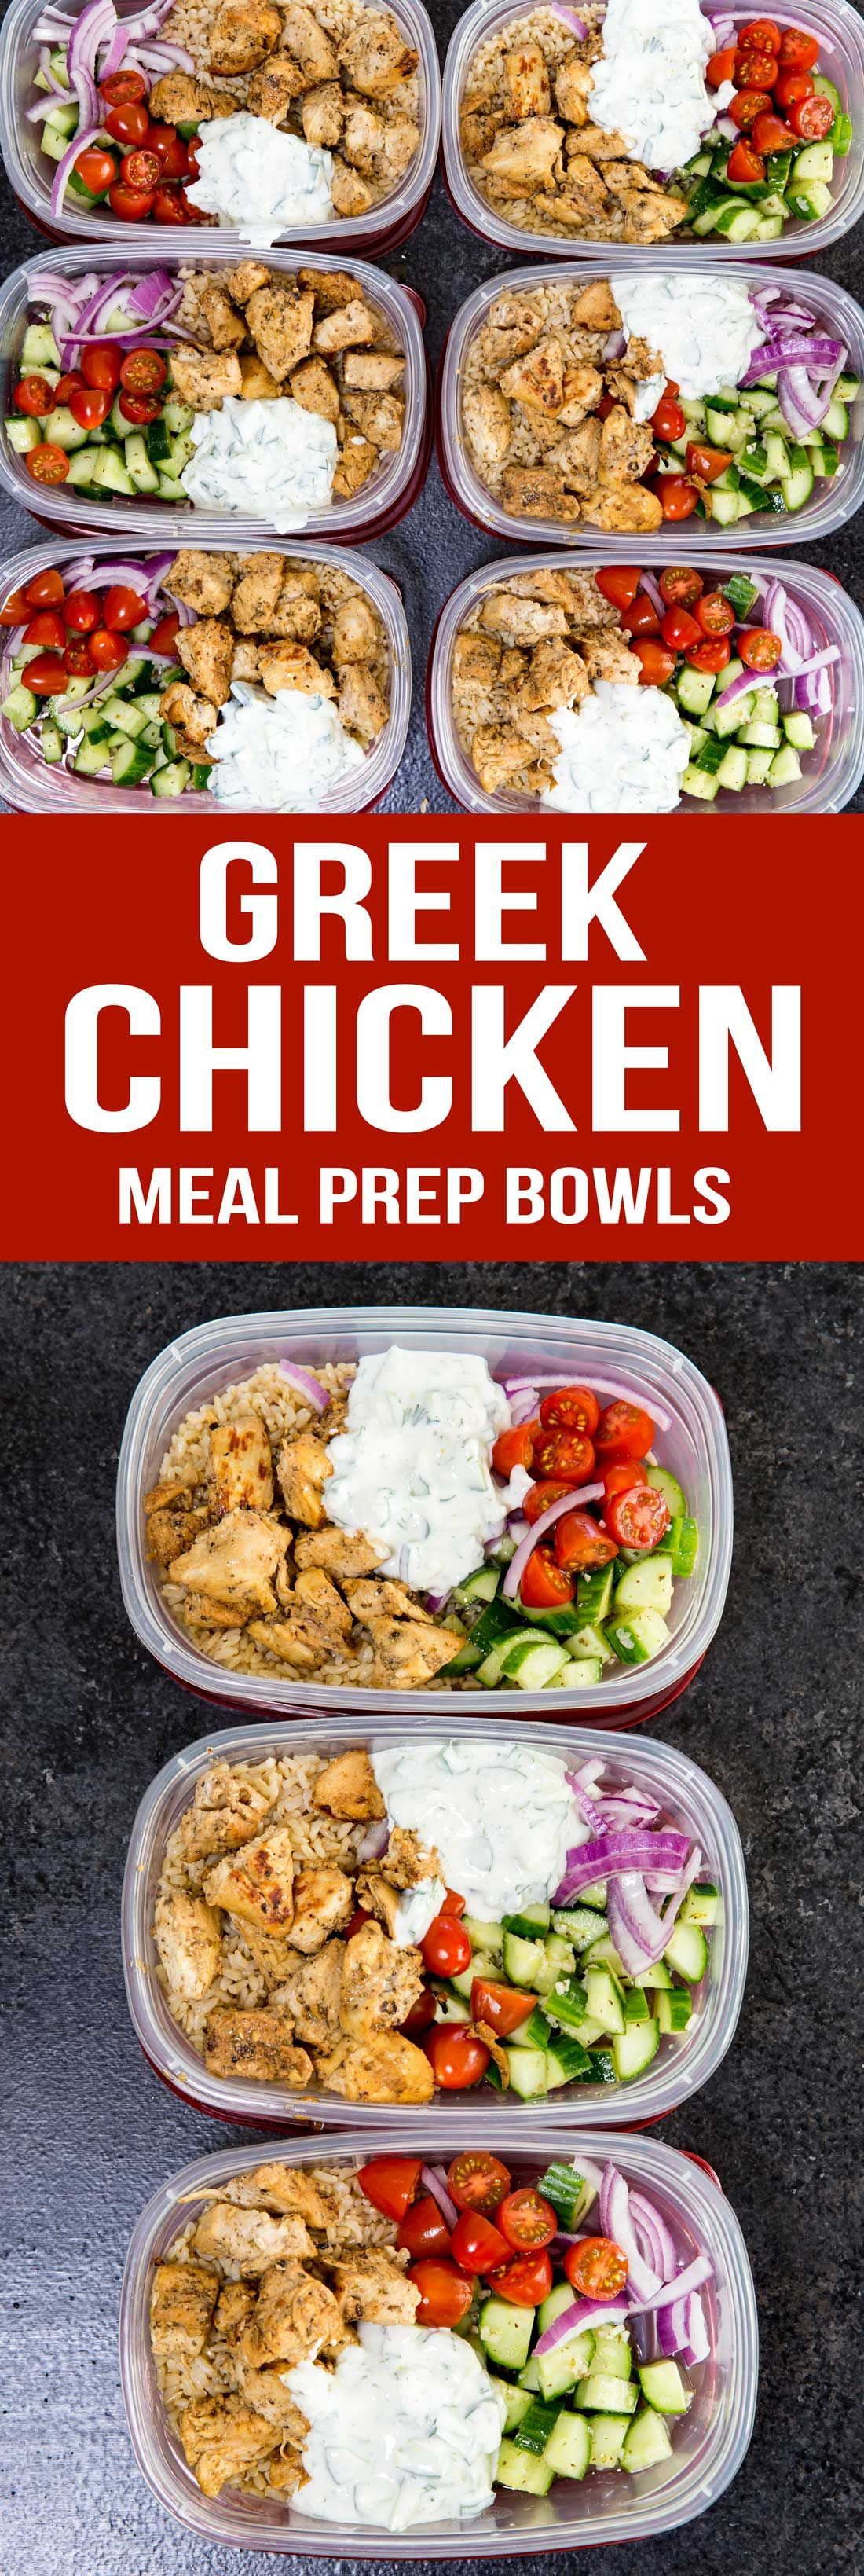 Greek Chicken Bowls Meal Prep Easy Recipe Low Carb Pinterest